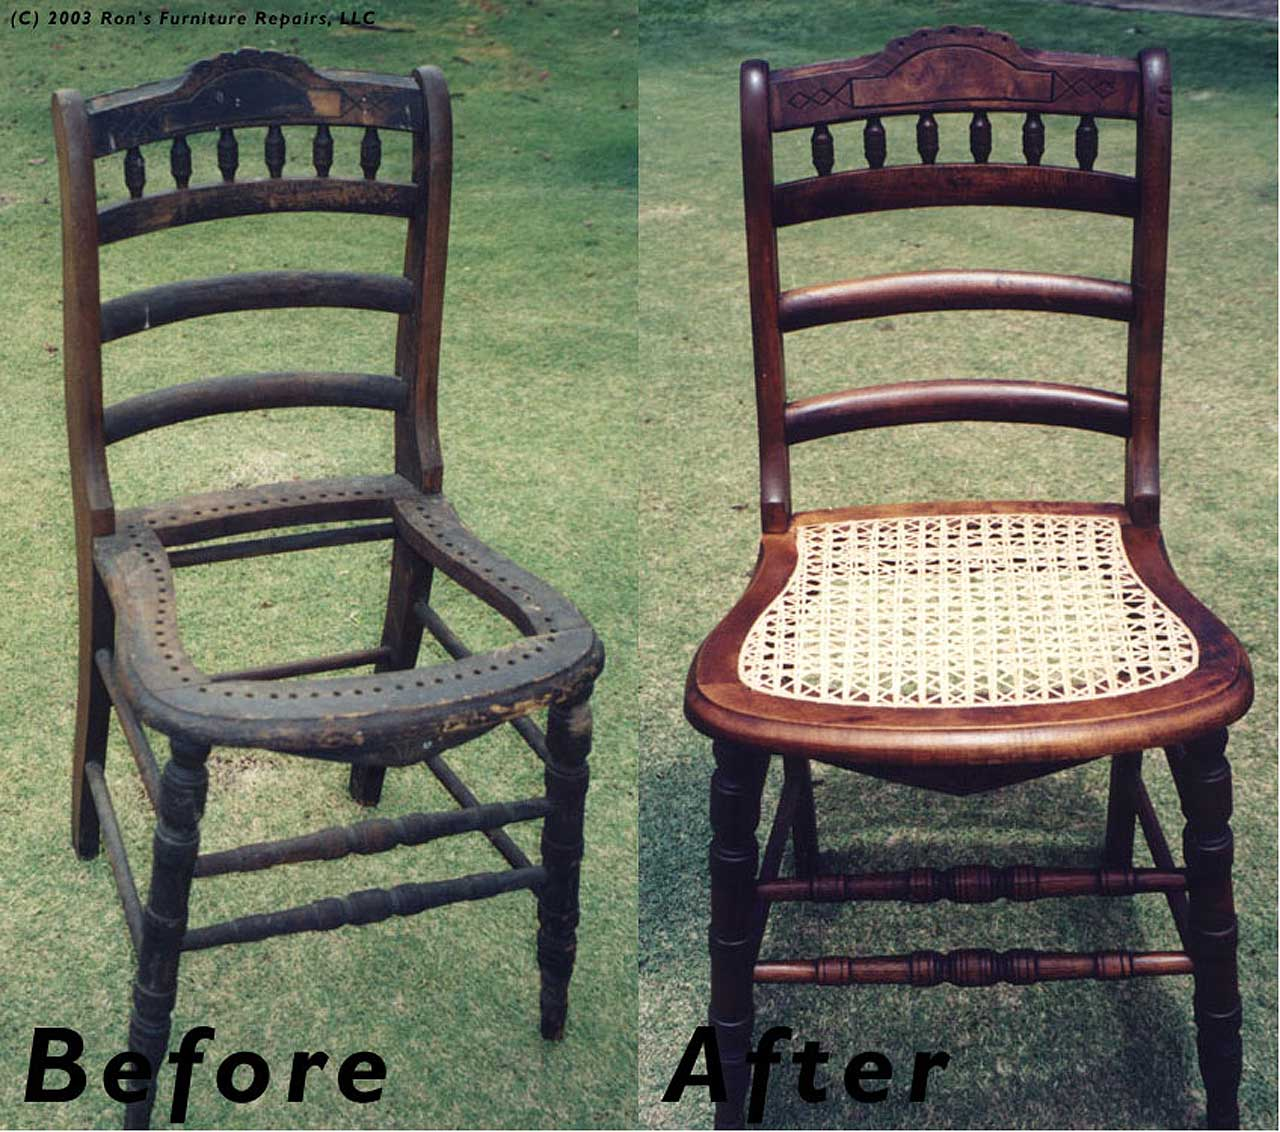 Gentil 100 Year Old Chair Restored Using Only Dr. Woodwellu0027s Wood Elixir